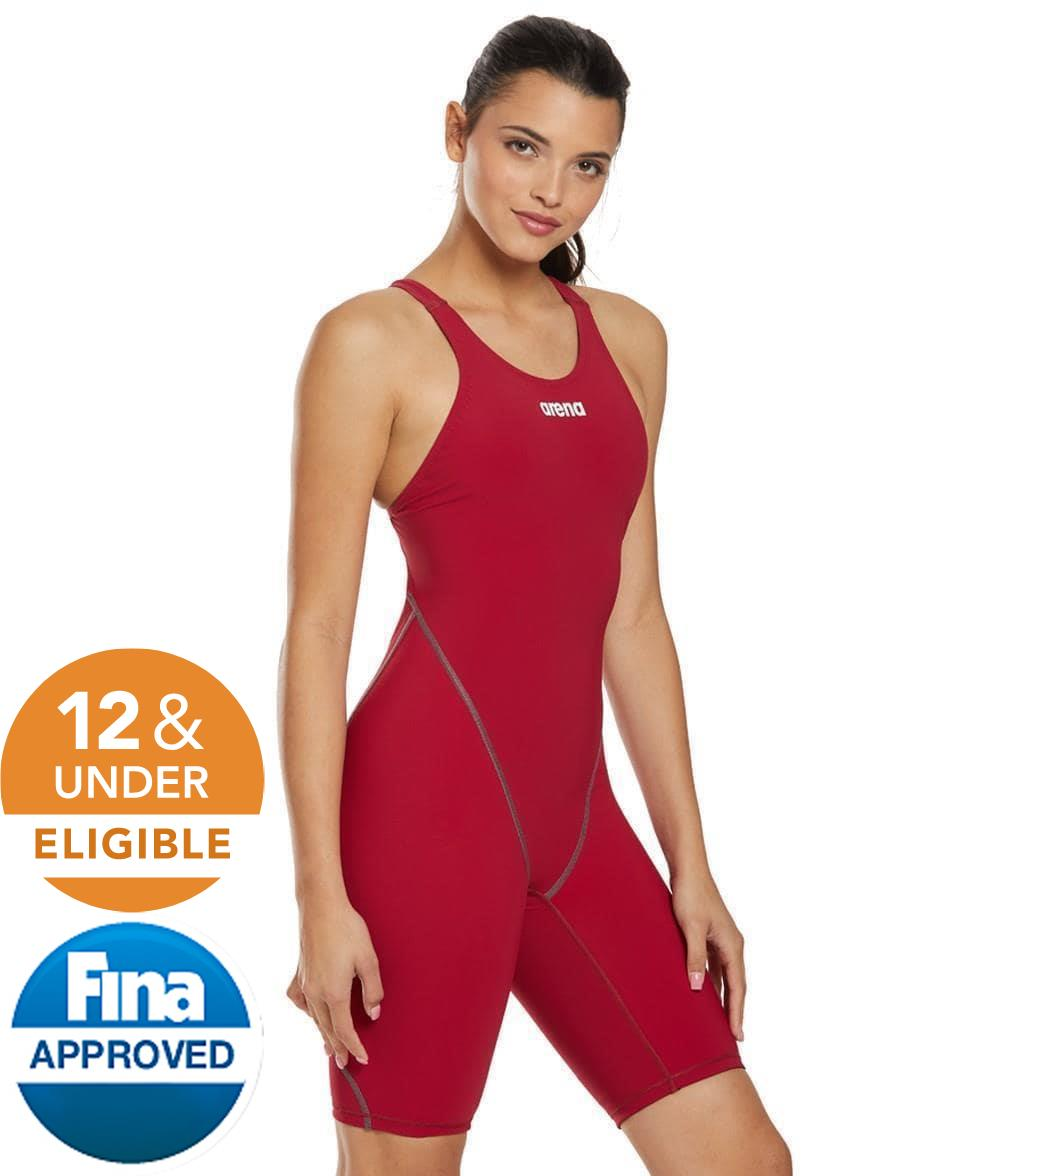 c5b431ad42 Arena Women's Powerskin ST 2.0 Open Back Tech Suit Swimsuit at  SwimOutlet.com - Free Shipping